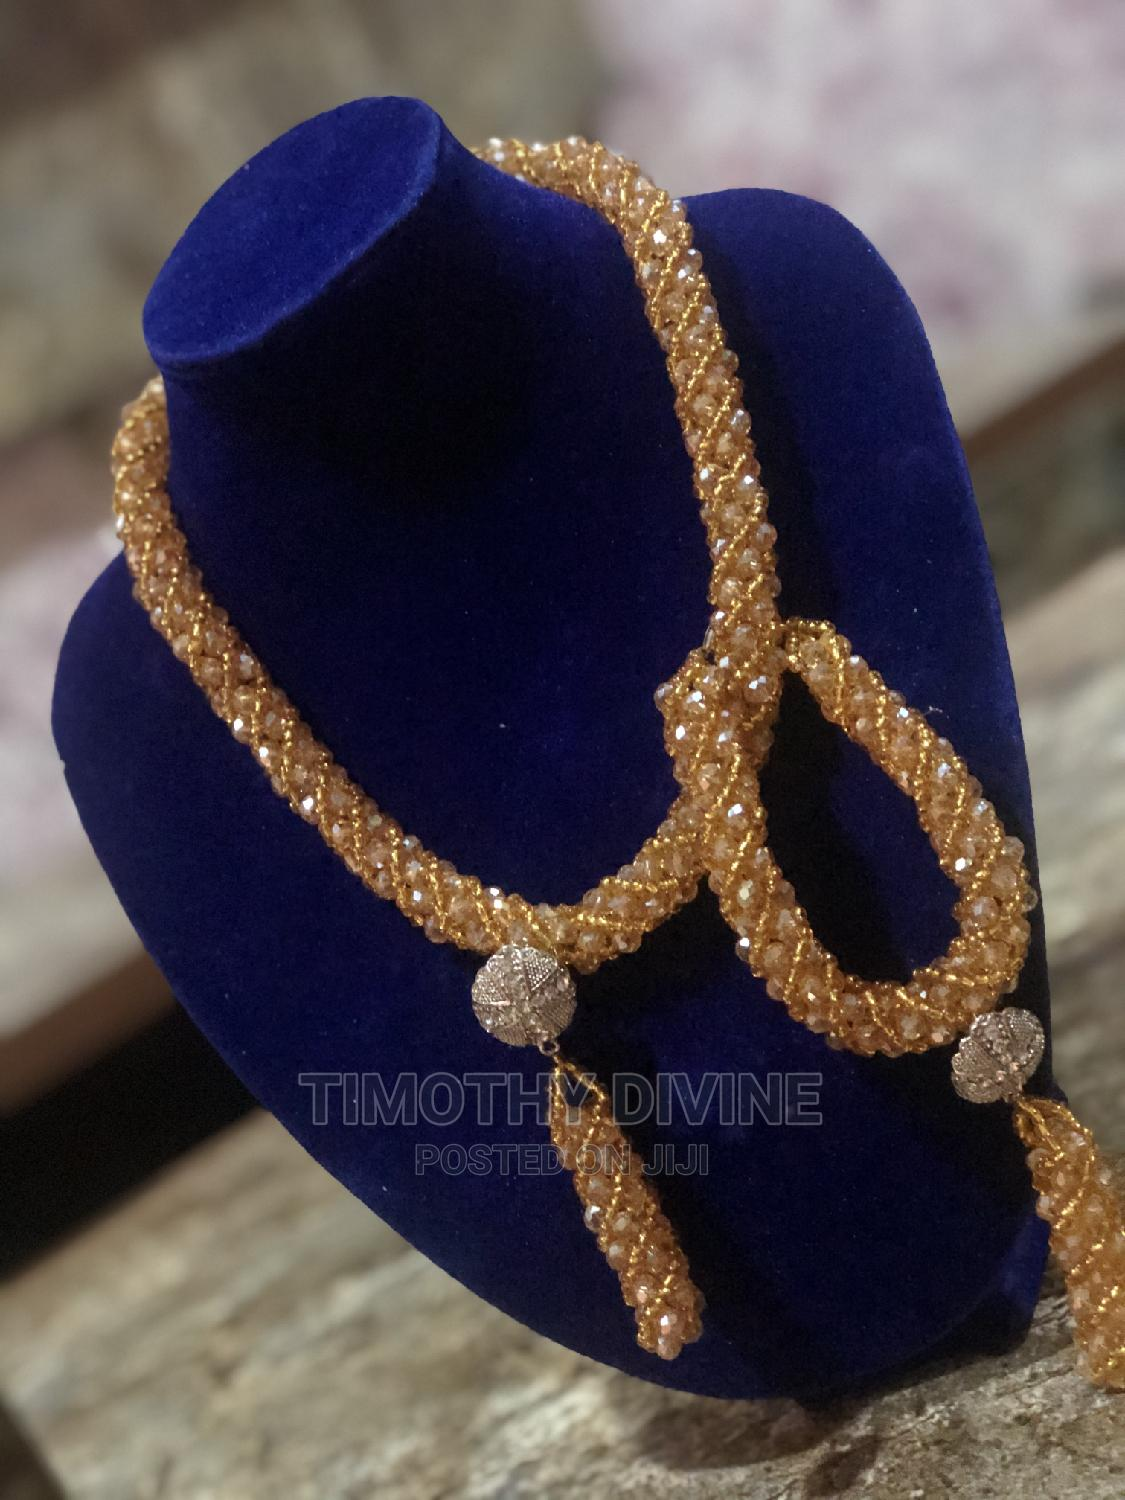 Traditional and Waist Beads